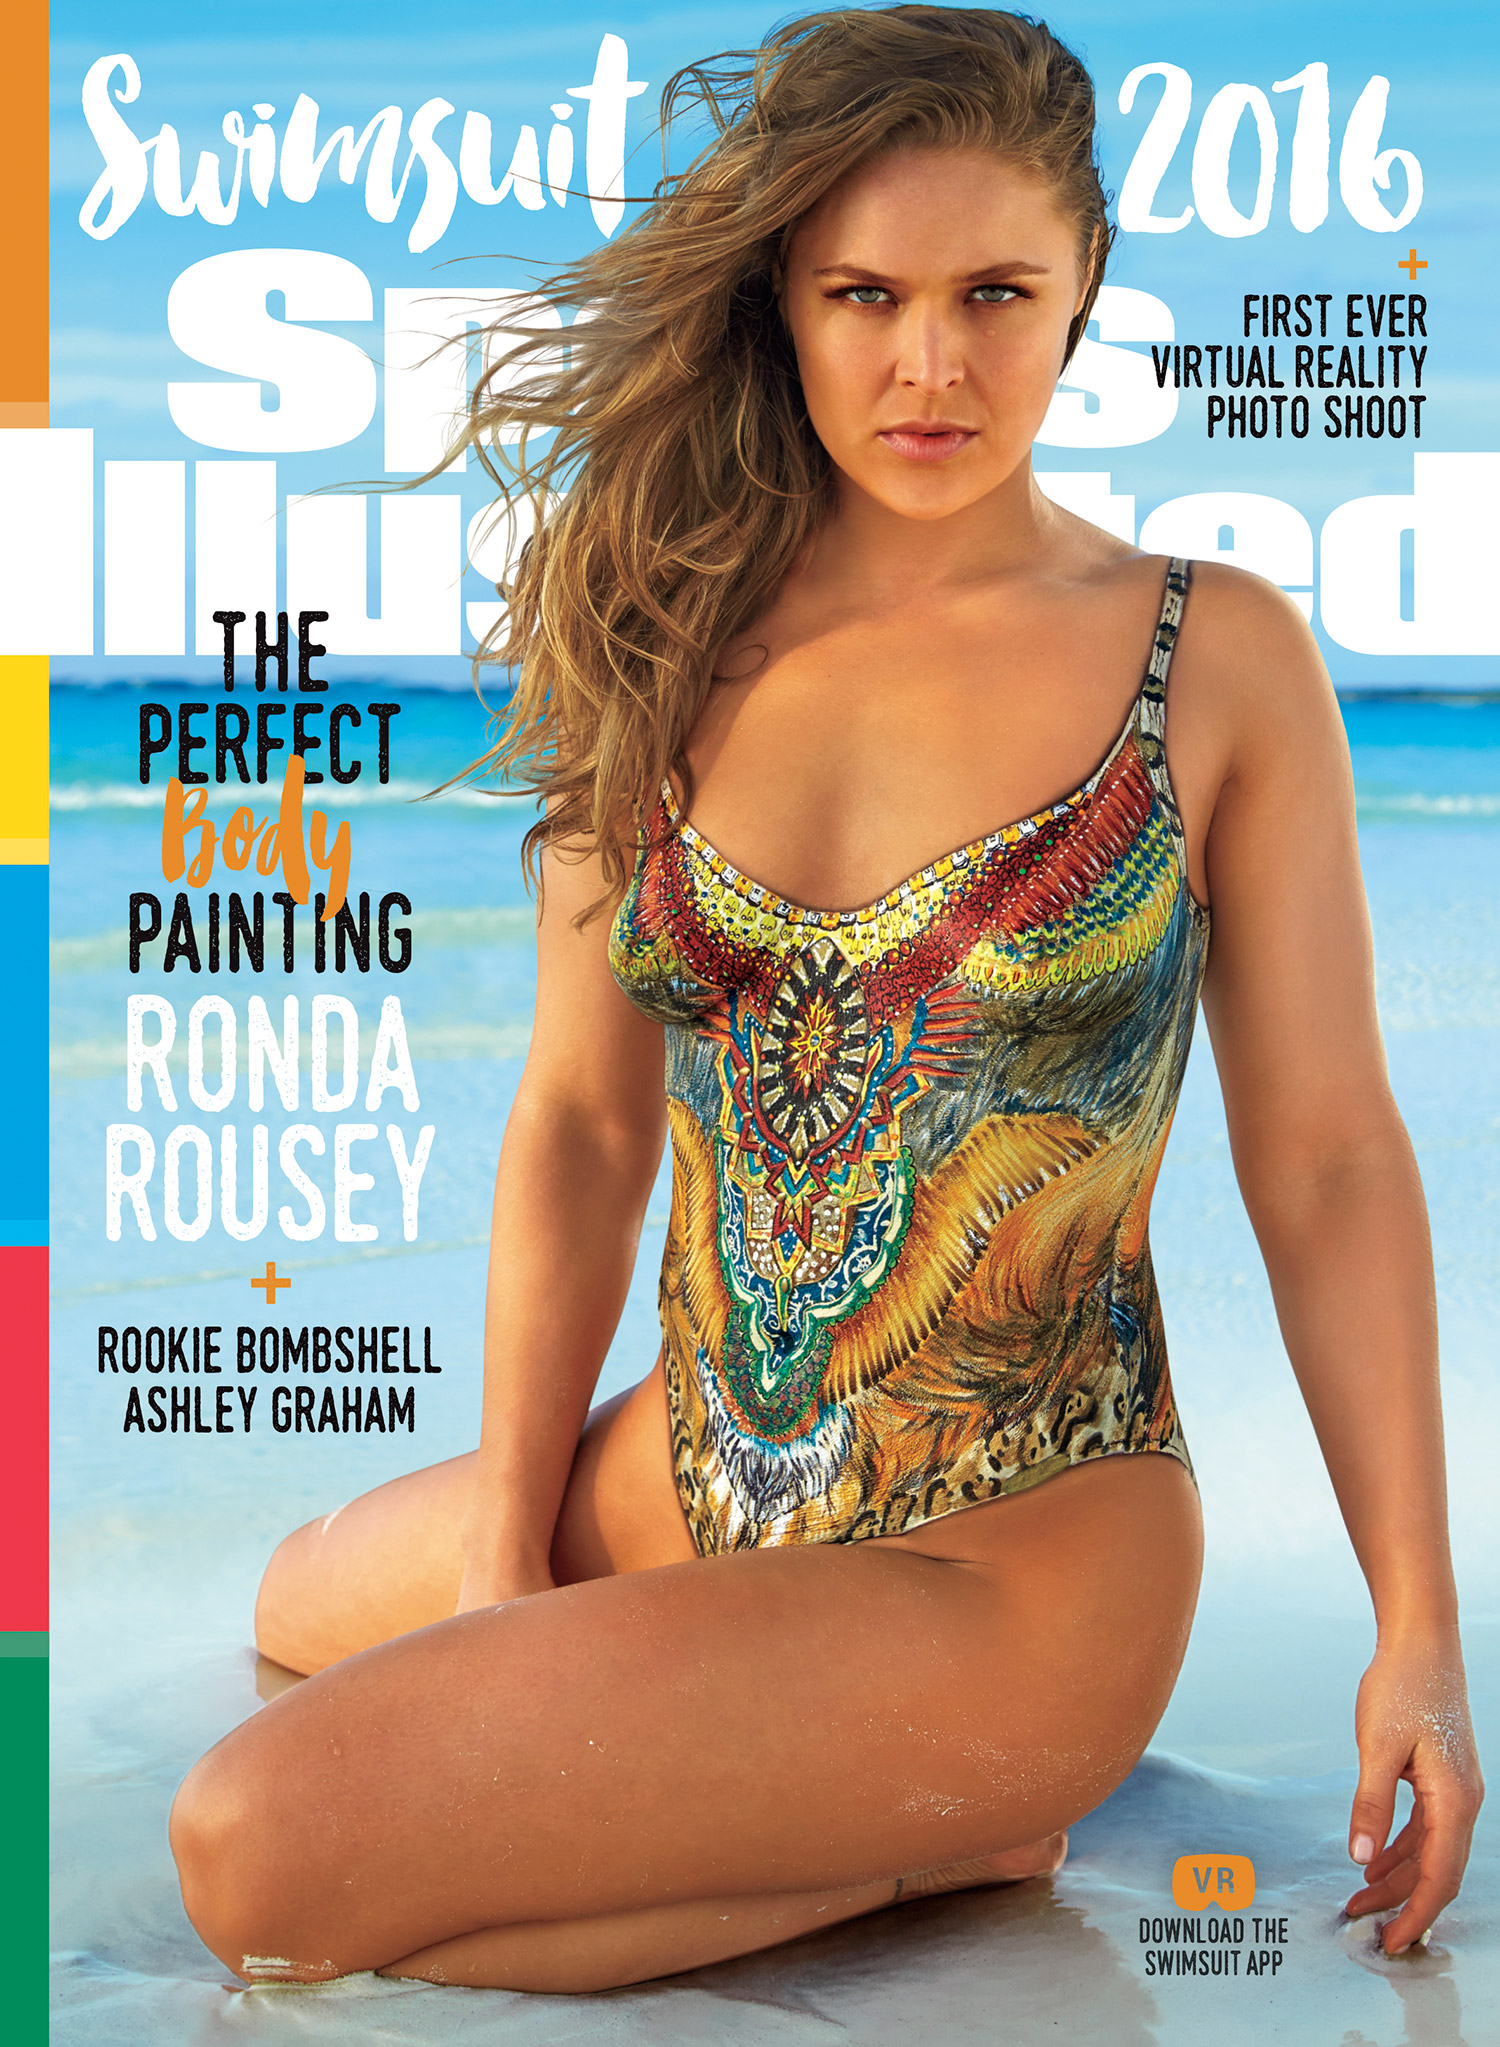 Ronda Rousey for Sports Illustrated Swimsuit Edition-1